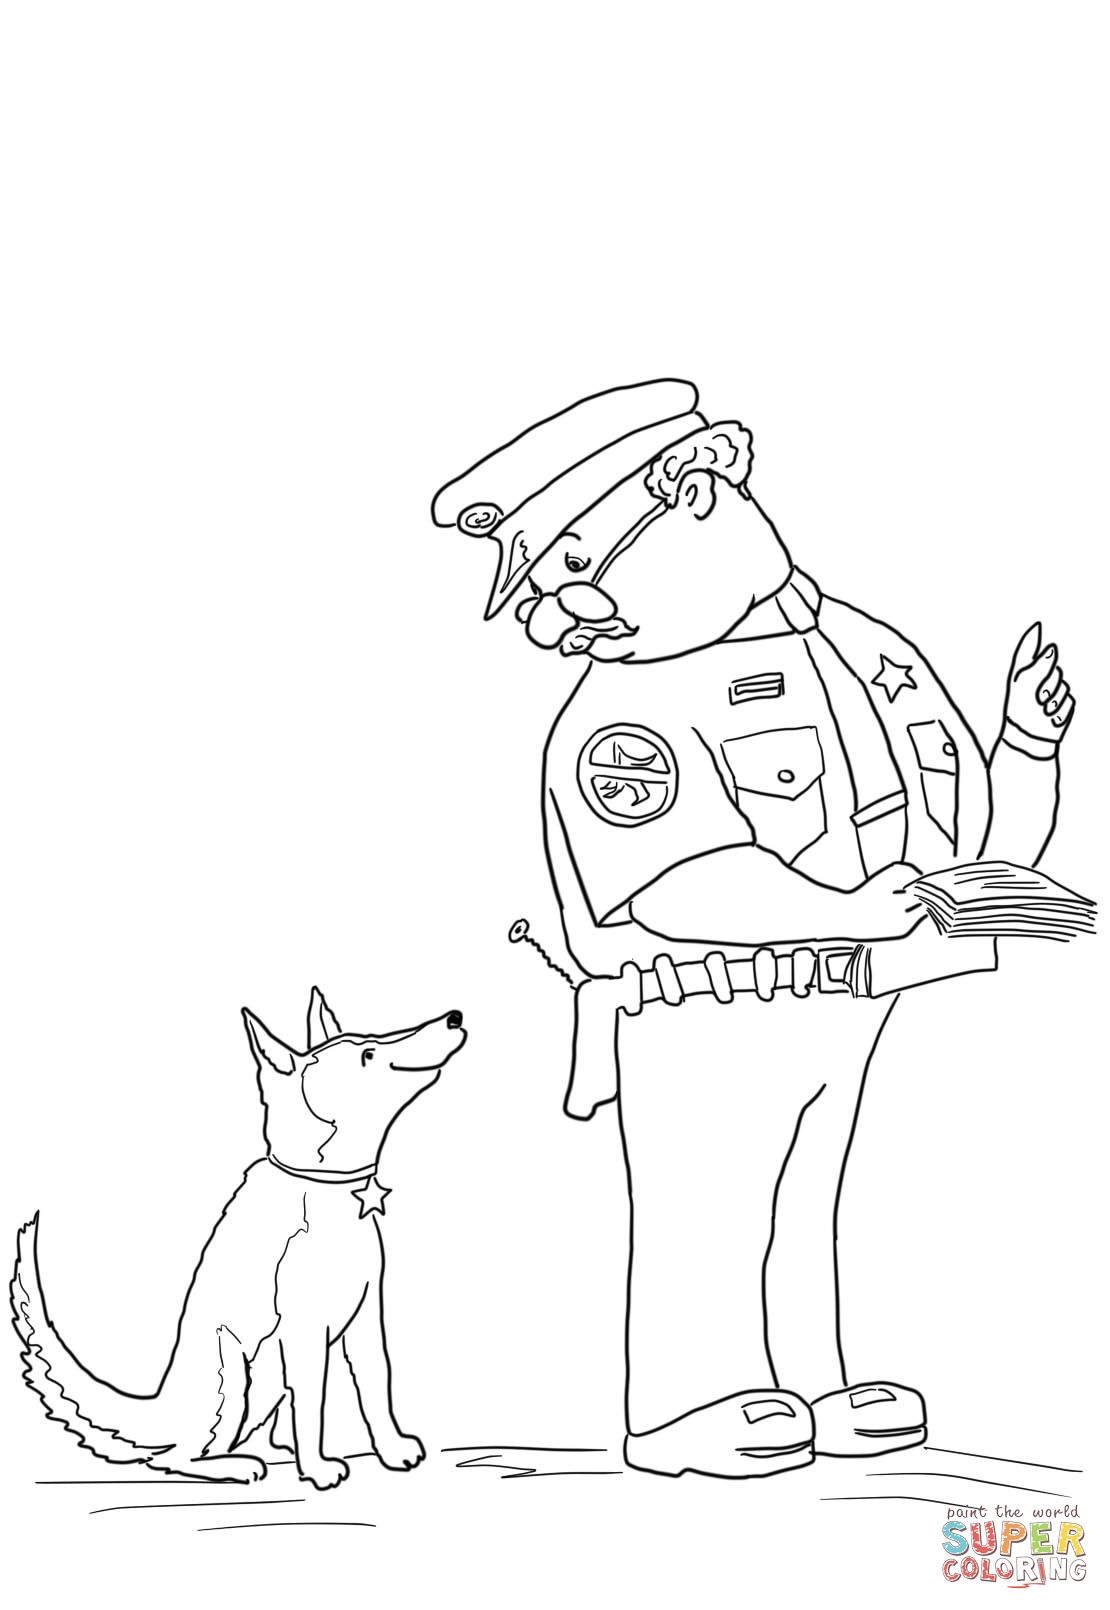 Officer buckle and gloria coloring sheets